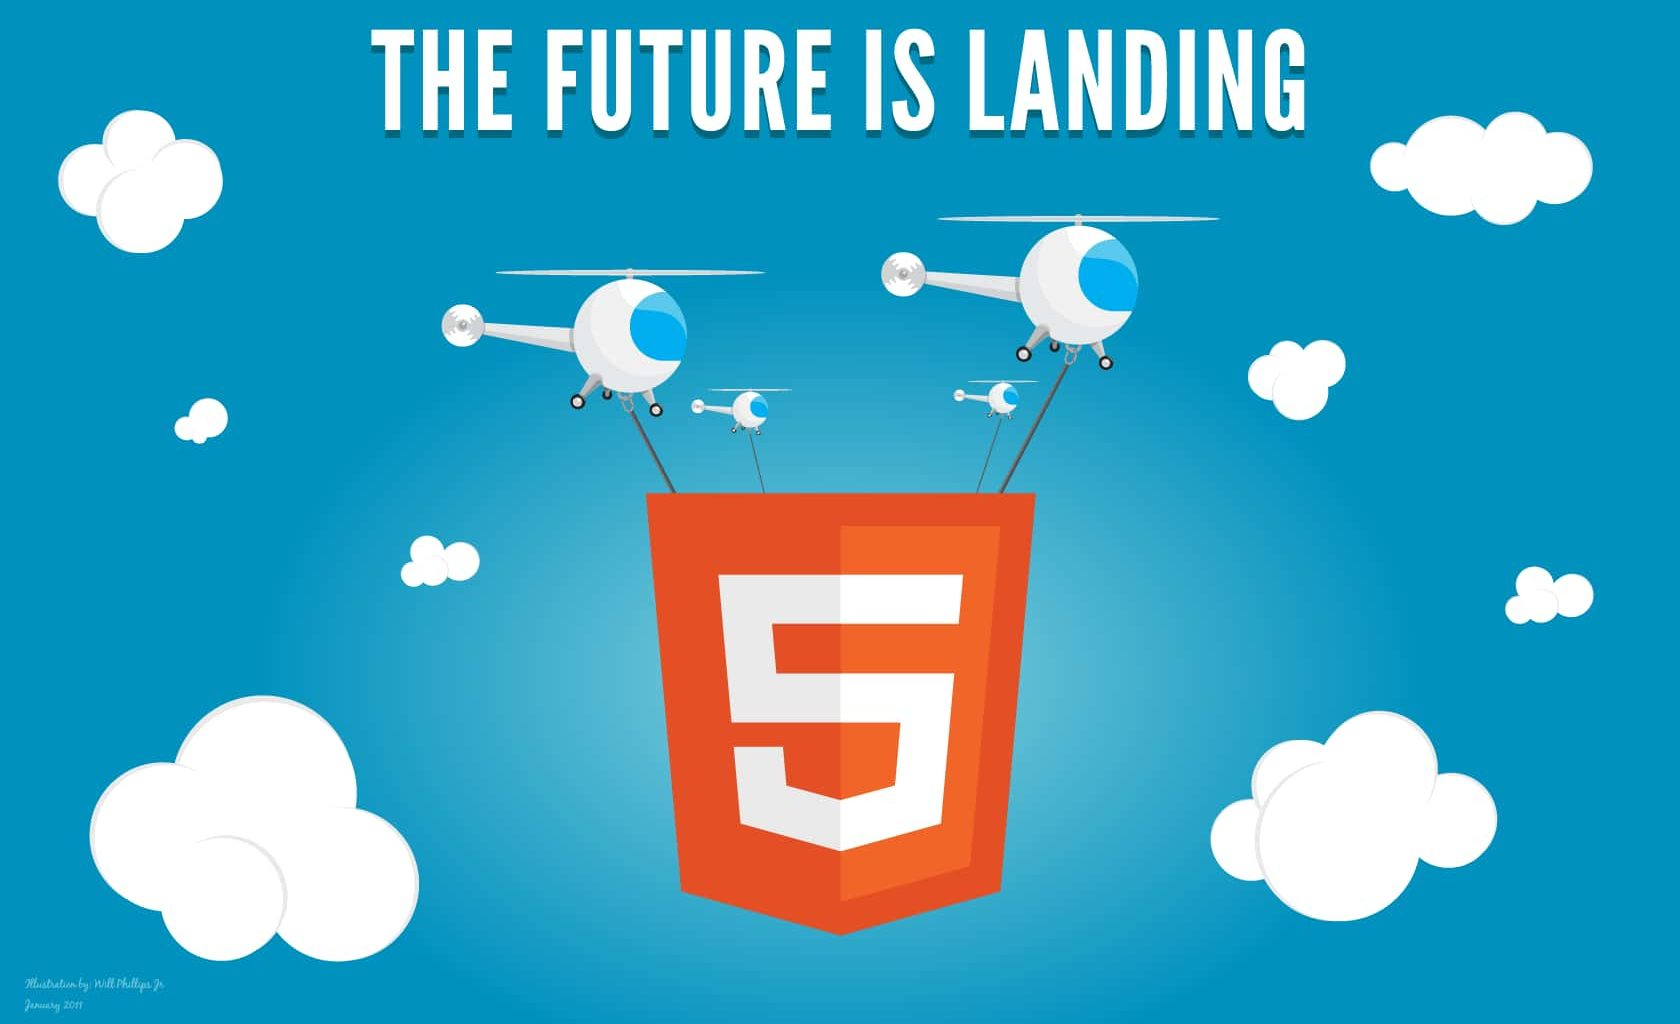 Silverlight and HTML5 and Your Future